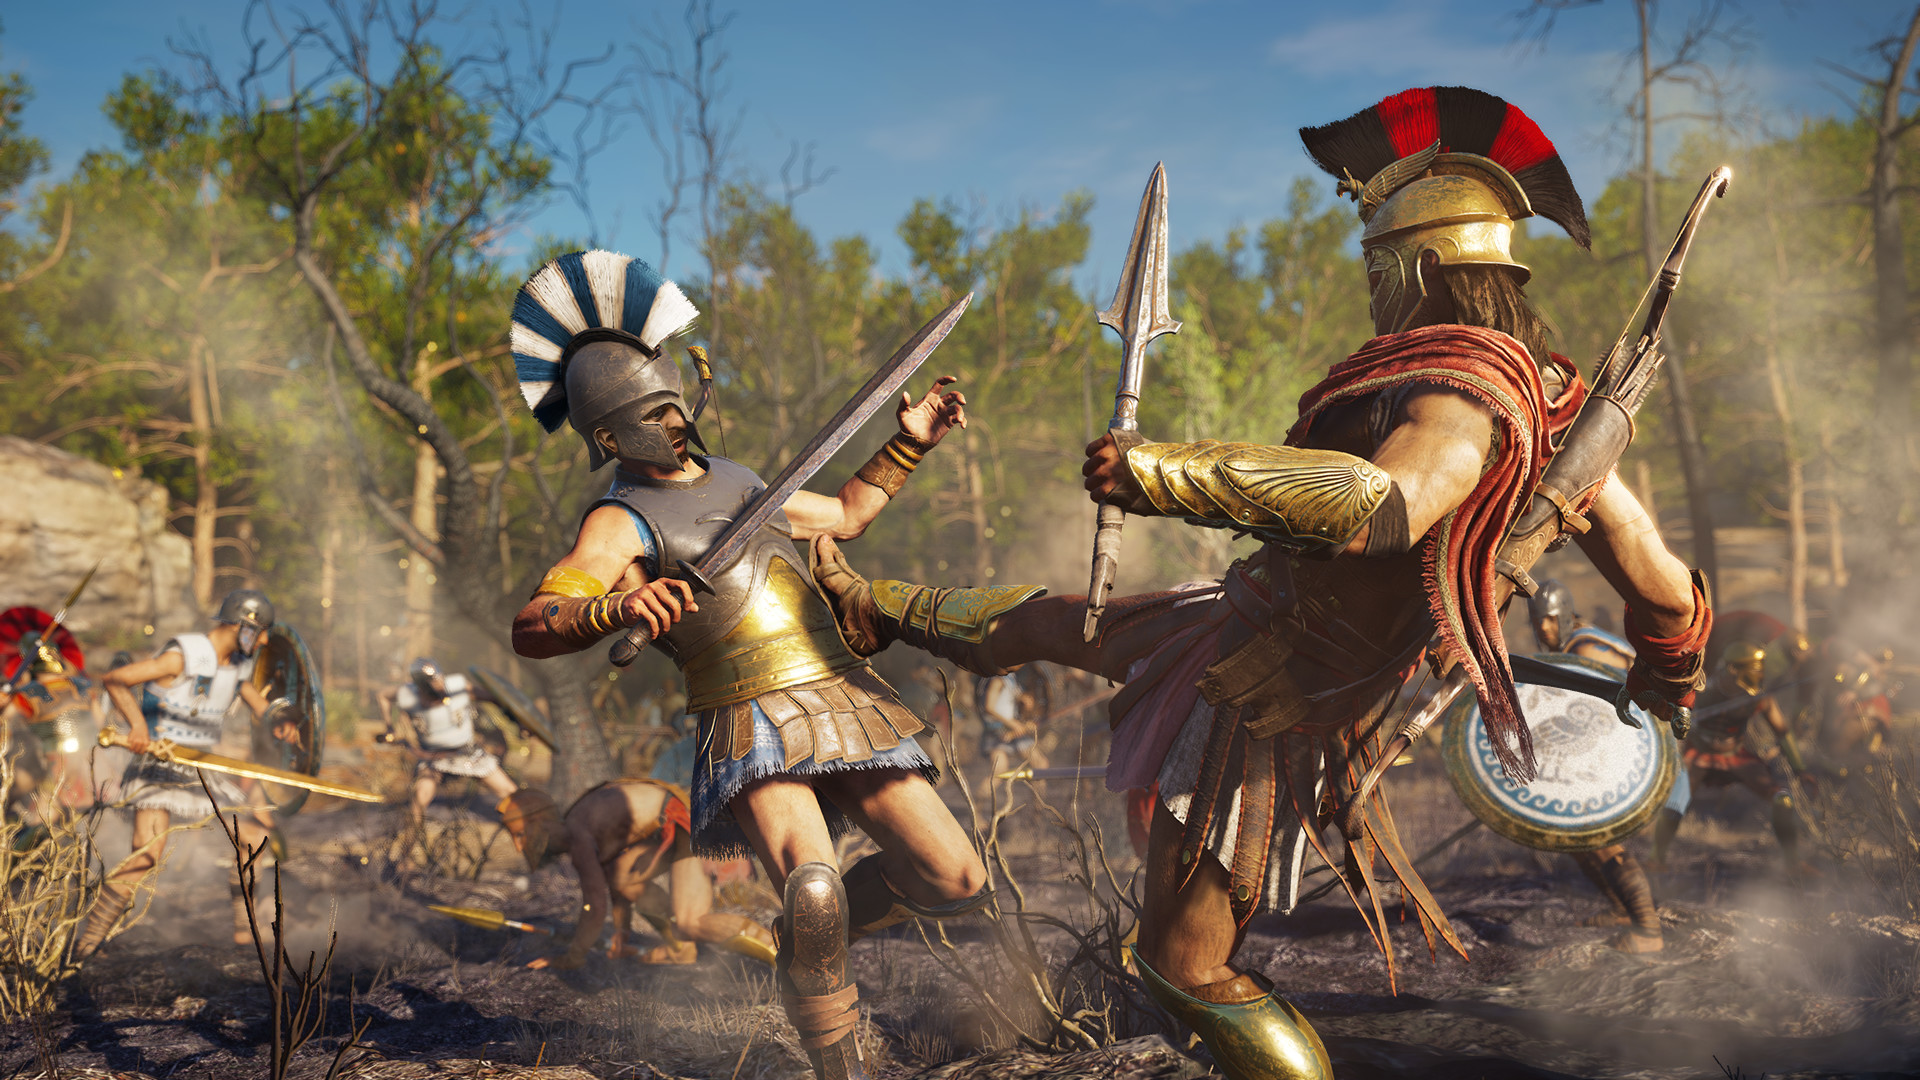 161 799 8003 782 70 Assassin's Creed Odyssey - Best Weapons